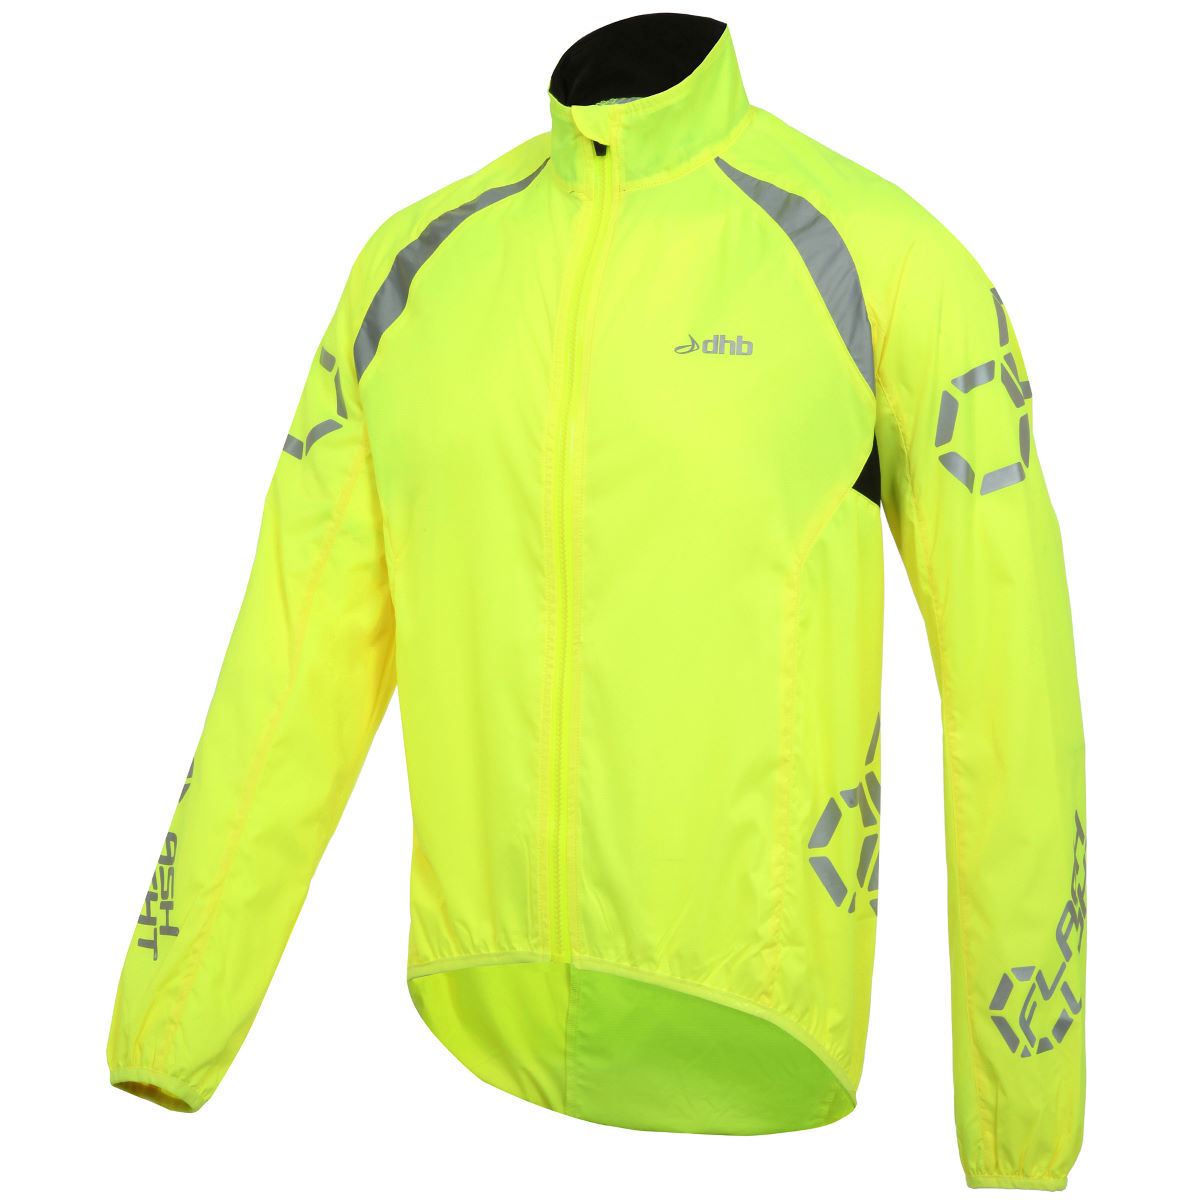 Veste dhb Flashlight (coupe-vent) - S Fluro Yellow Coupe-vents vélo